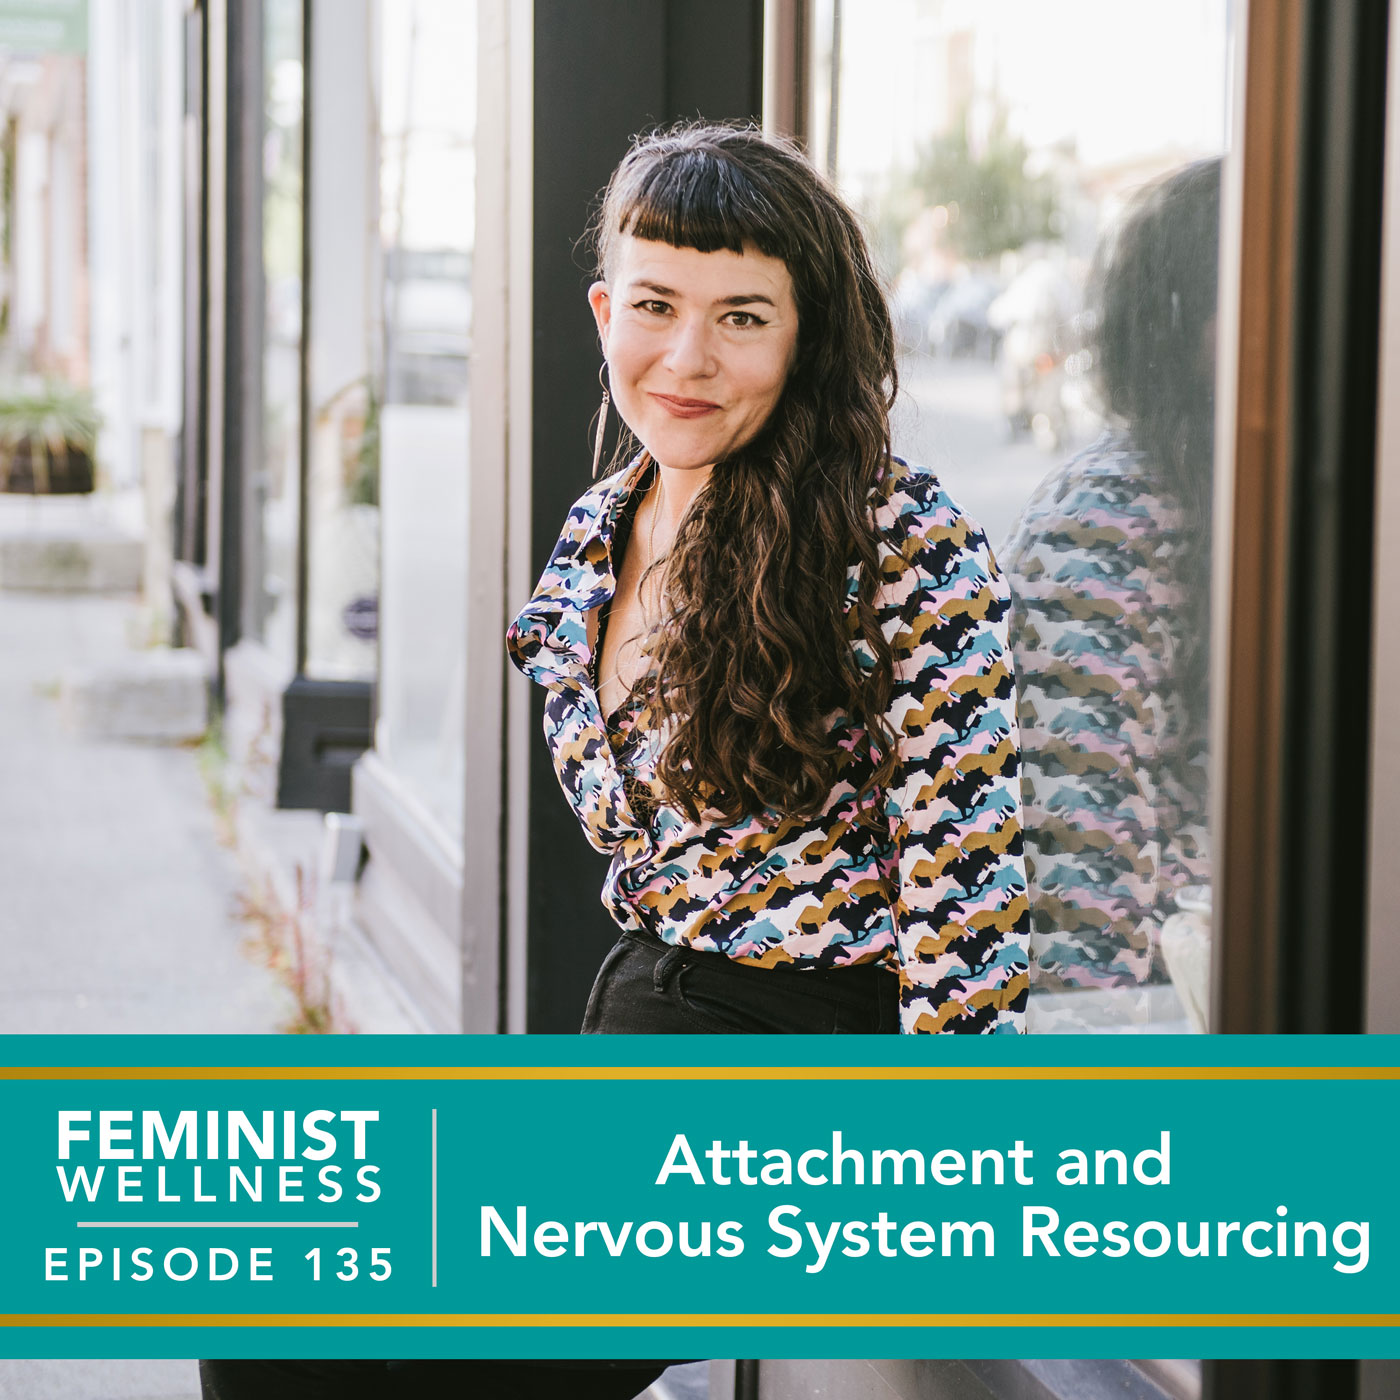 Feminist Wellness with Victoria Albina | Attachment and Nervous System Resourcing